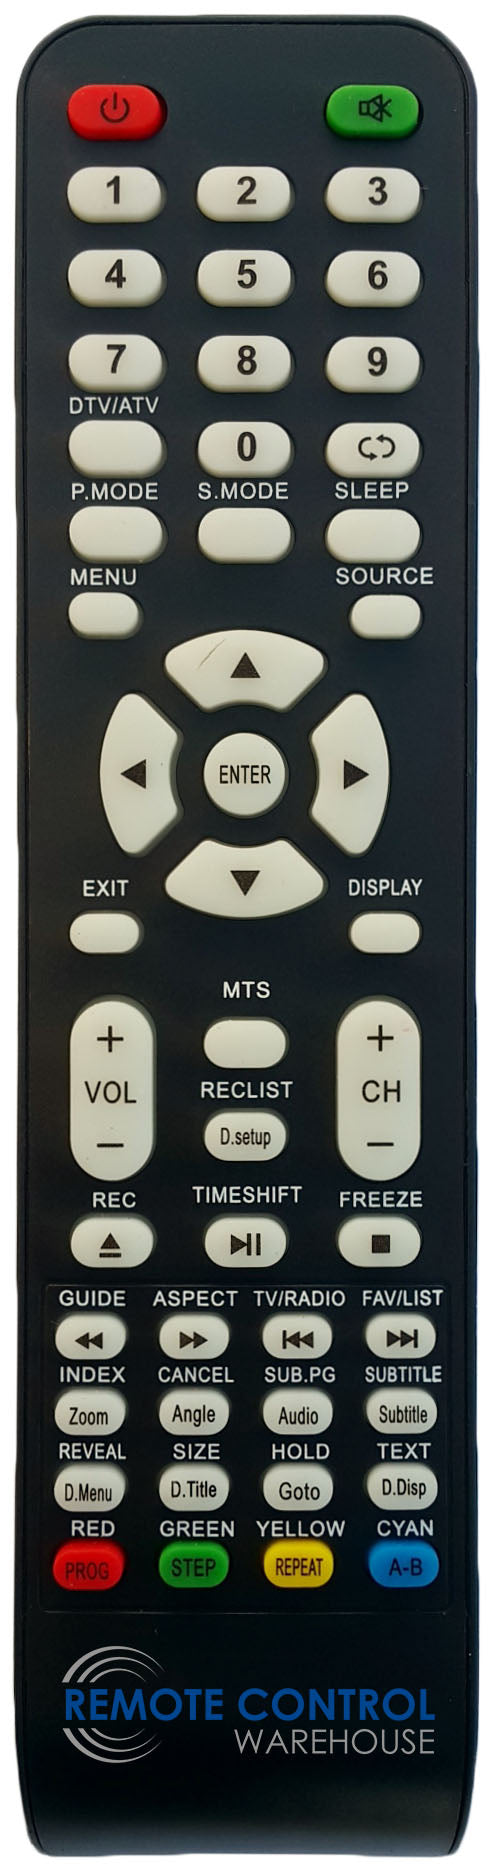 REPLACEMENT NEONIQ REMOTE CONTROL FOR NEONIQ  ELTL32EXFHDD  LCD TV - Remote Control Warehouse